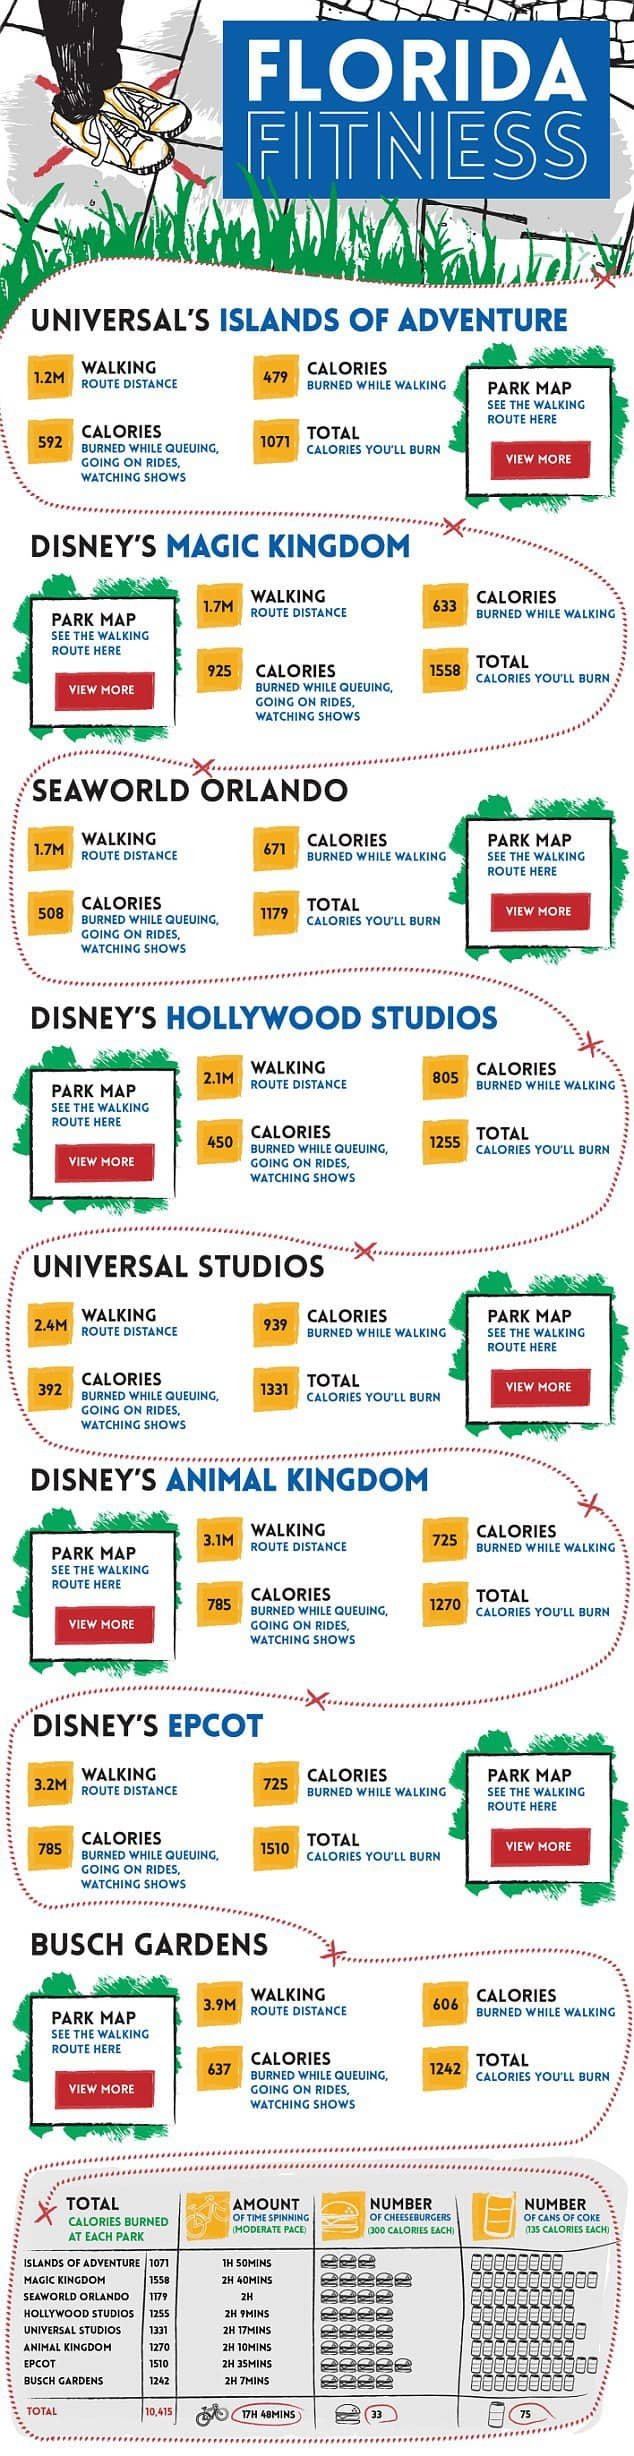 Need more reasons to go to Walt Disney World or Disneyland? How about for your health? It's healthy! Magic Kingdom | Epcot | Animal Kingdom | Hollywood Studios | theme parks